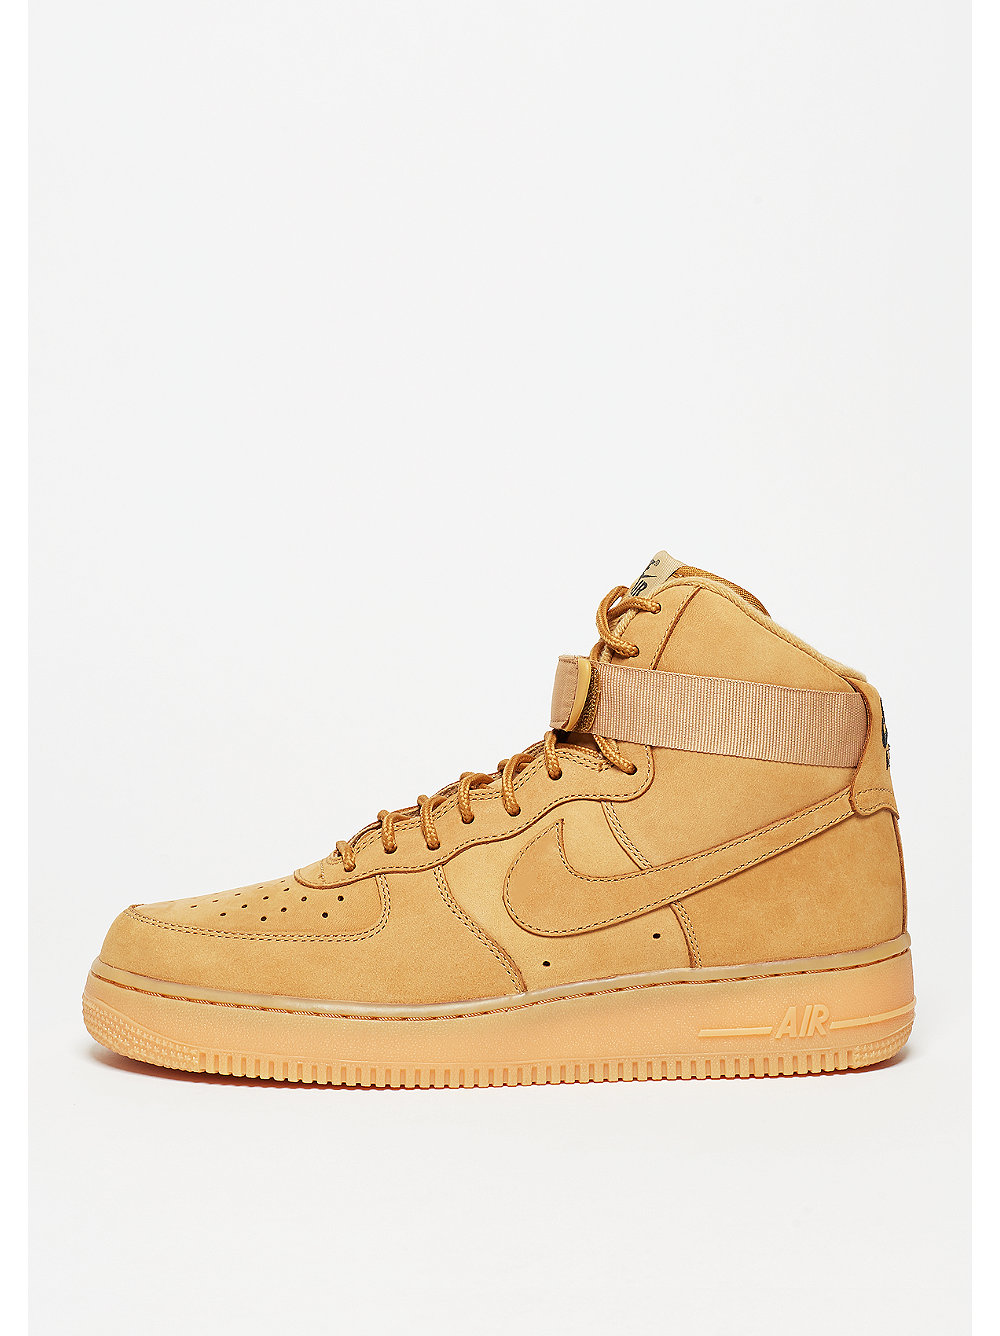 6ee231e2e37 NIKE Air Force 1 High 07 LV8 flax online bei SNIPES